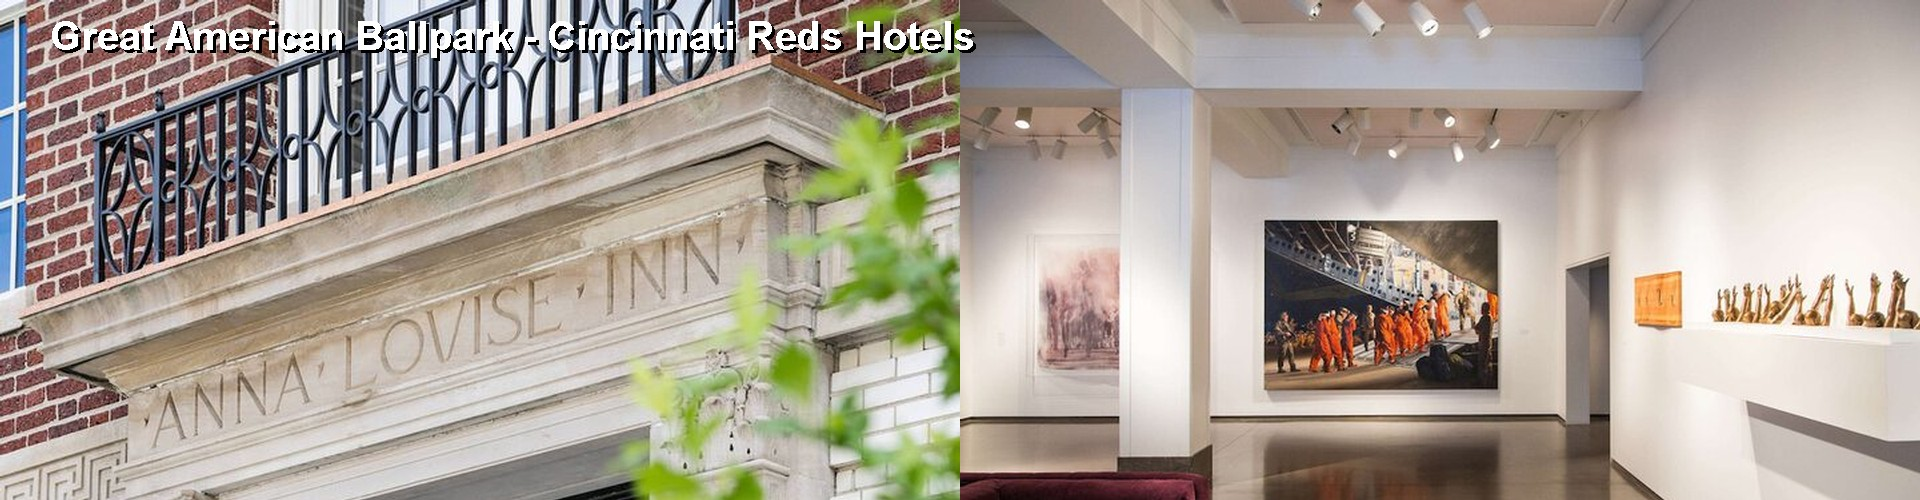 $50+ Hotels Near Great American Ballpark Cincinnati Reds in